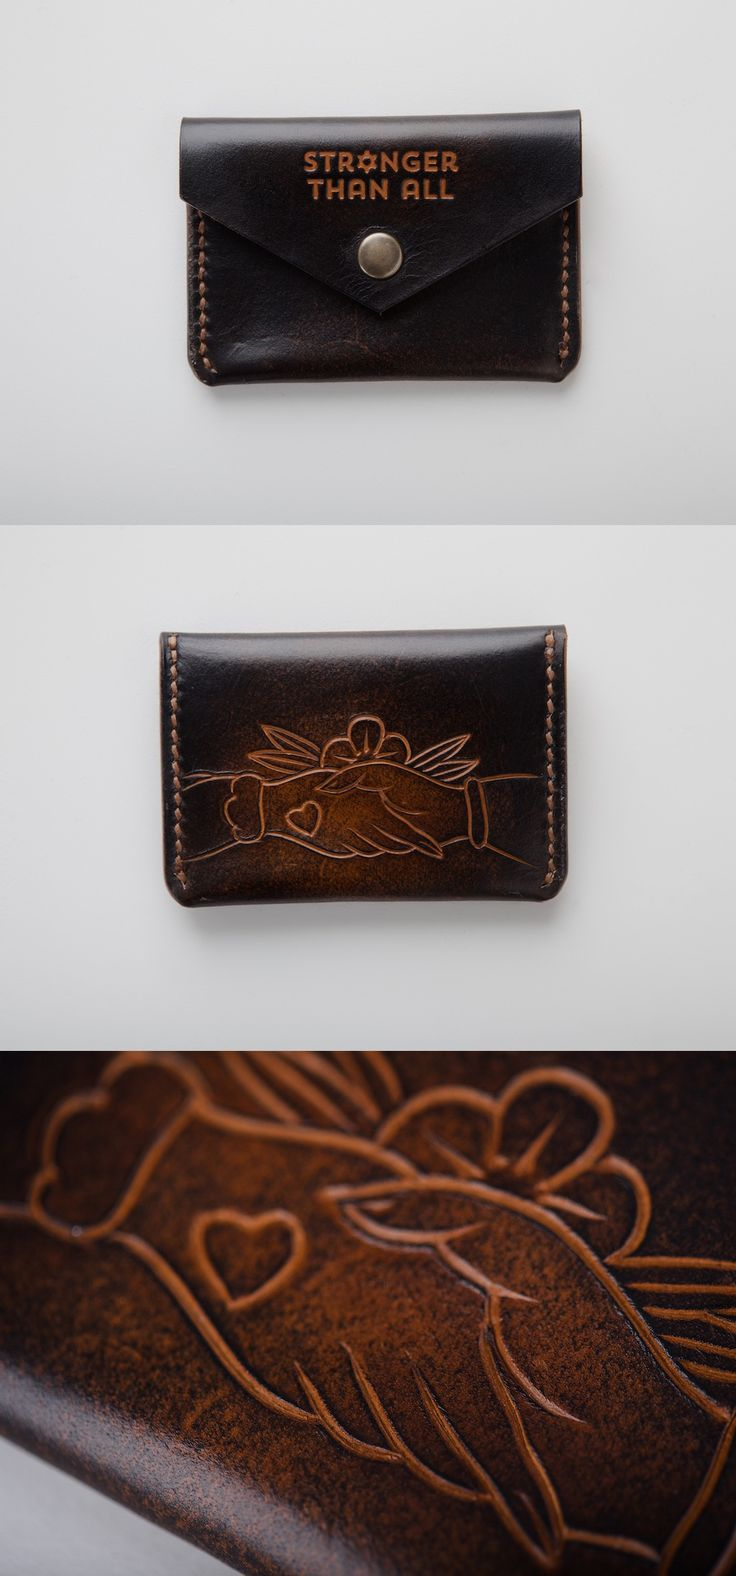 Friendship Design Hand Tooled Leather Snap Wallet  by  Stronger Than All Leather #EDC #everydaycarry #wallet